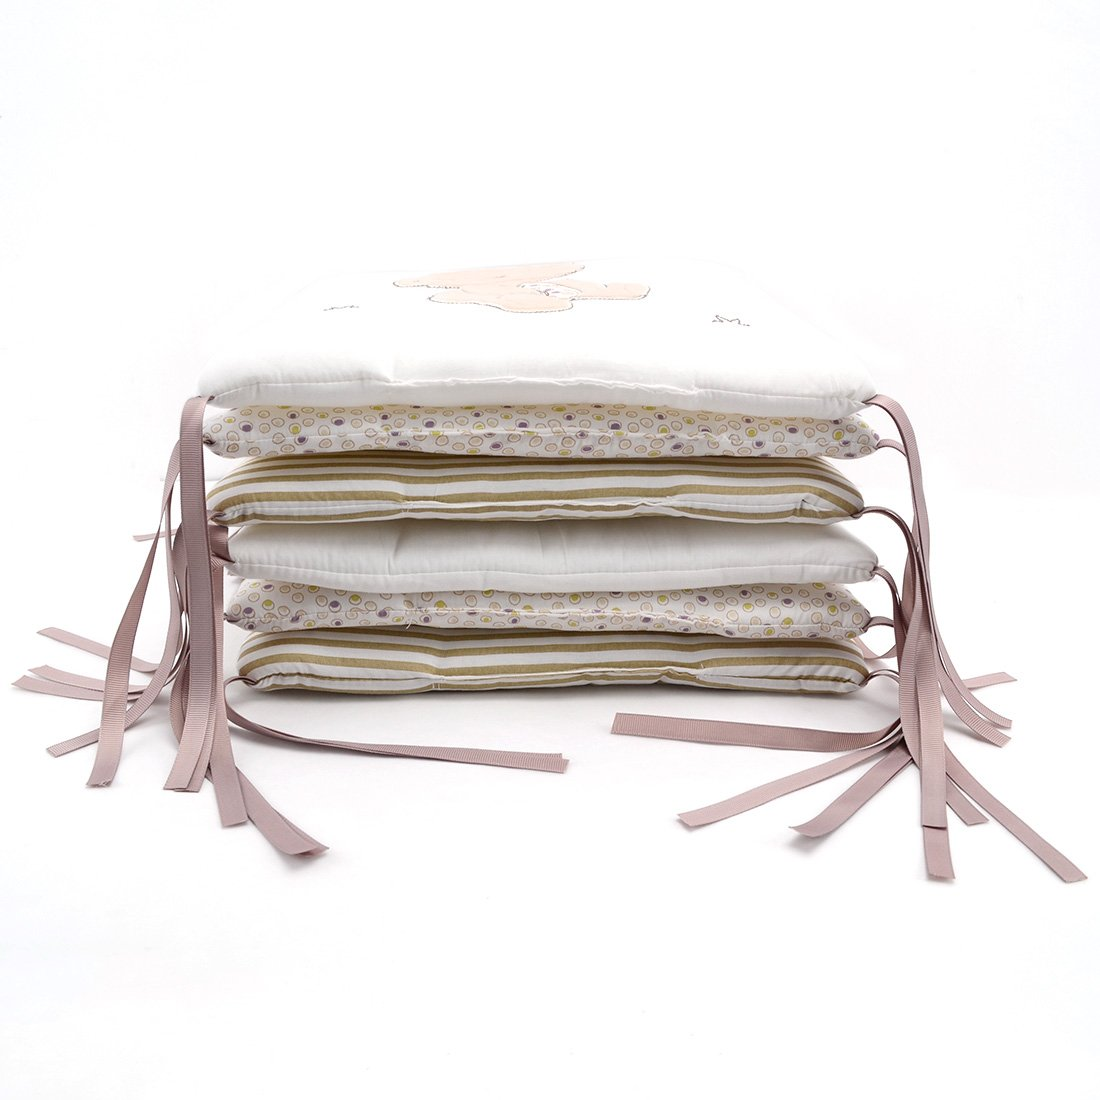 Hengfey Cotton Breathable Baby Crib Bumpers Beige 6 PCS by FREAHAP R (Image #4)